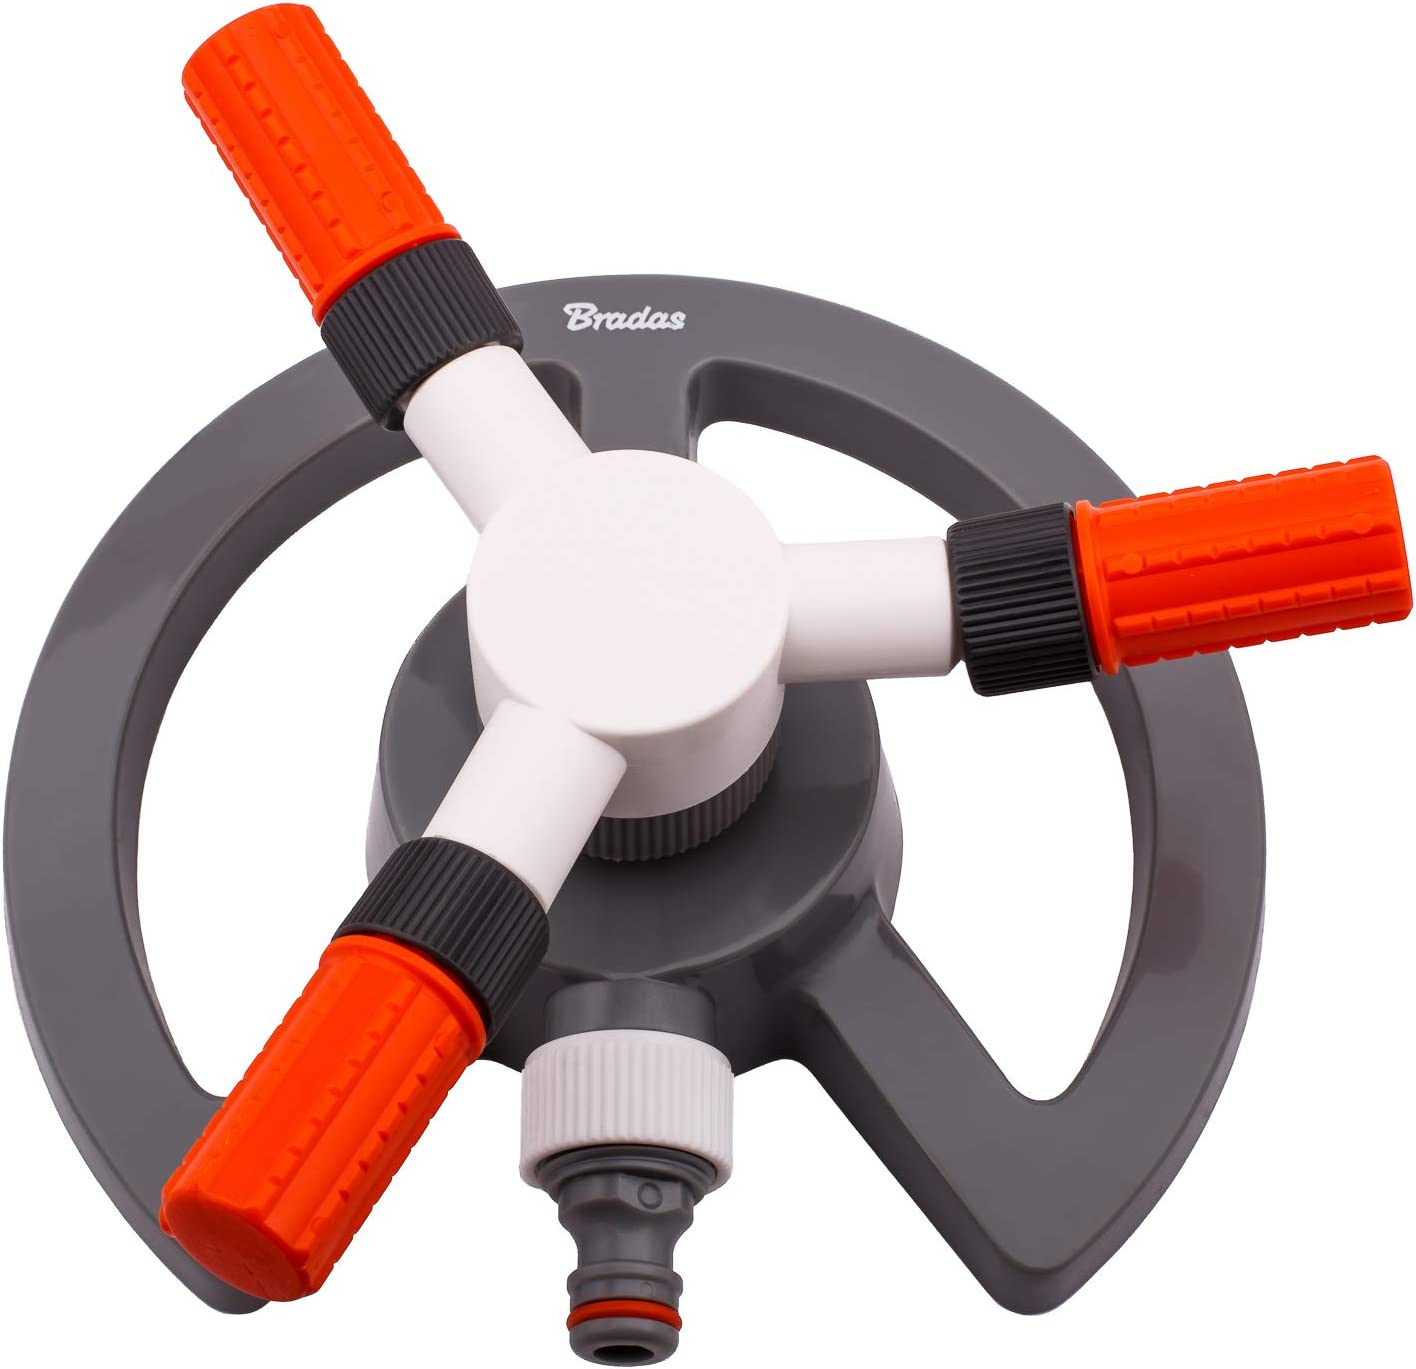 gaixample.org 360 DEGREE 3 ARM ROTATING SPRINKLER ROUND AUTOMATIC ...